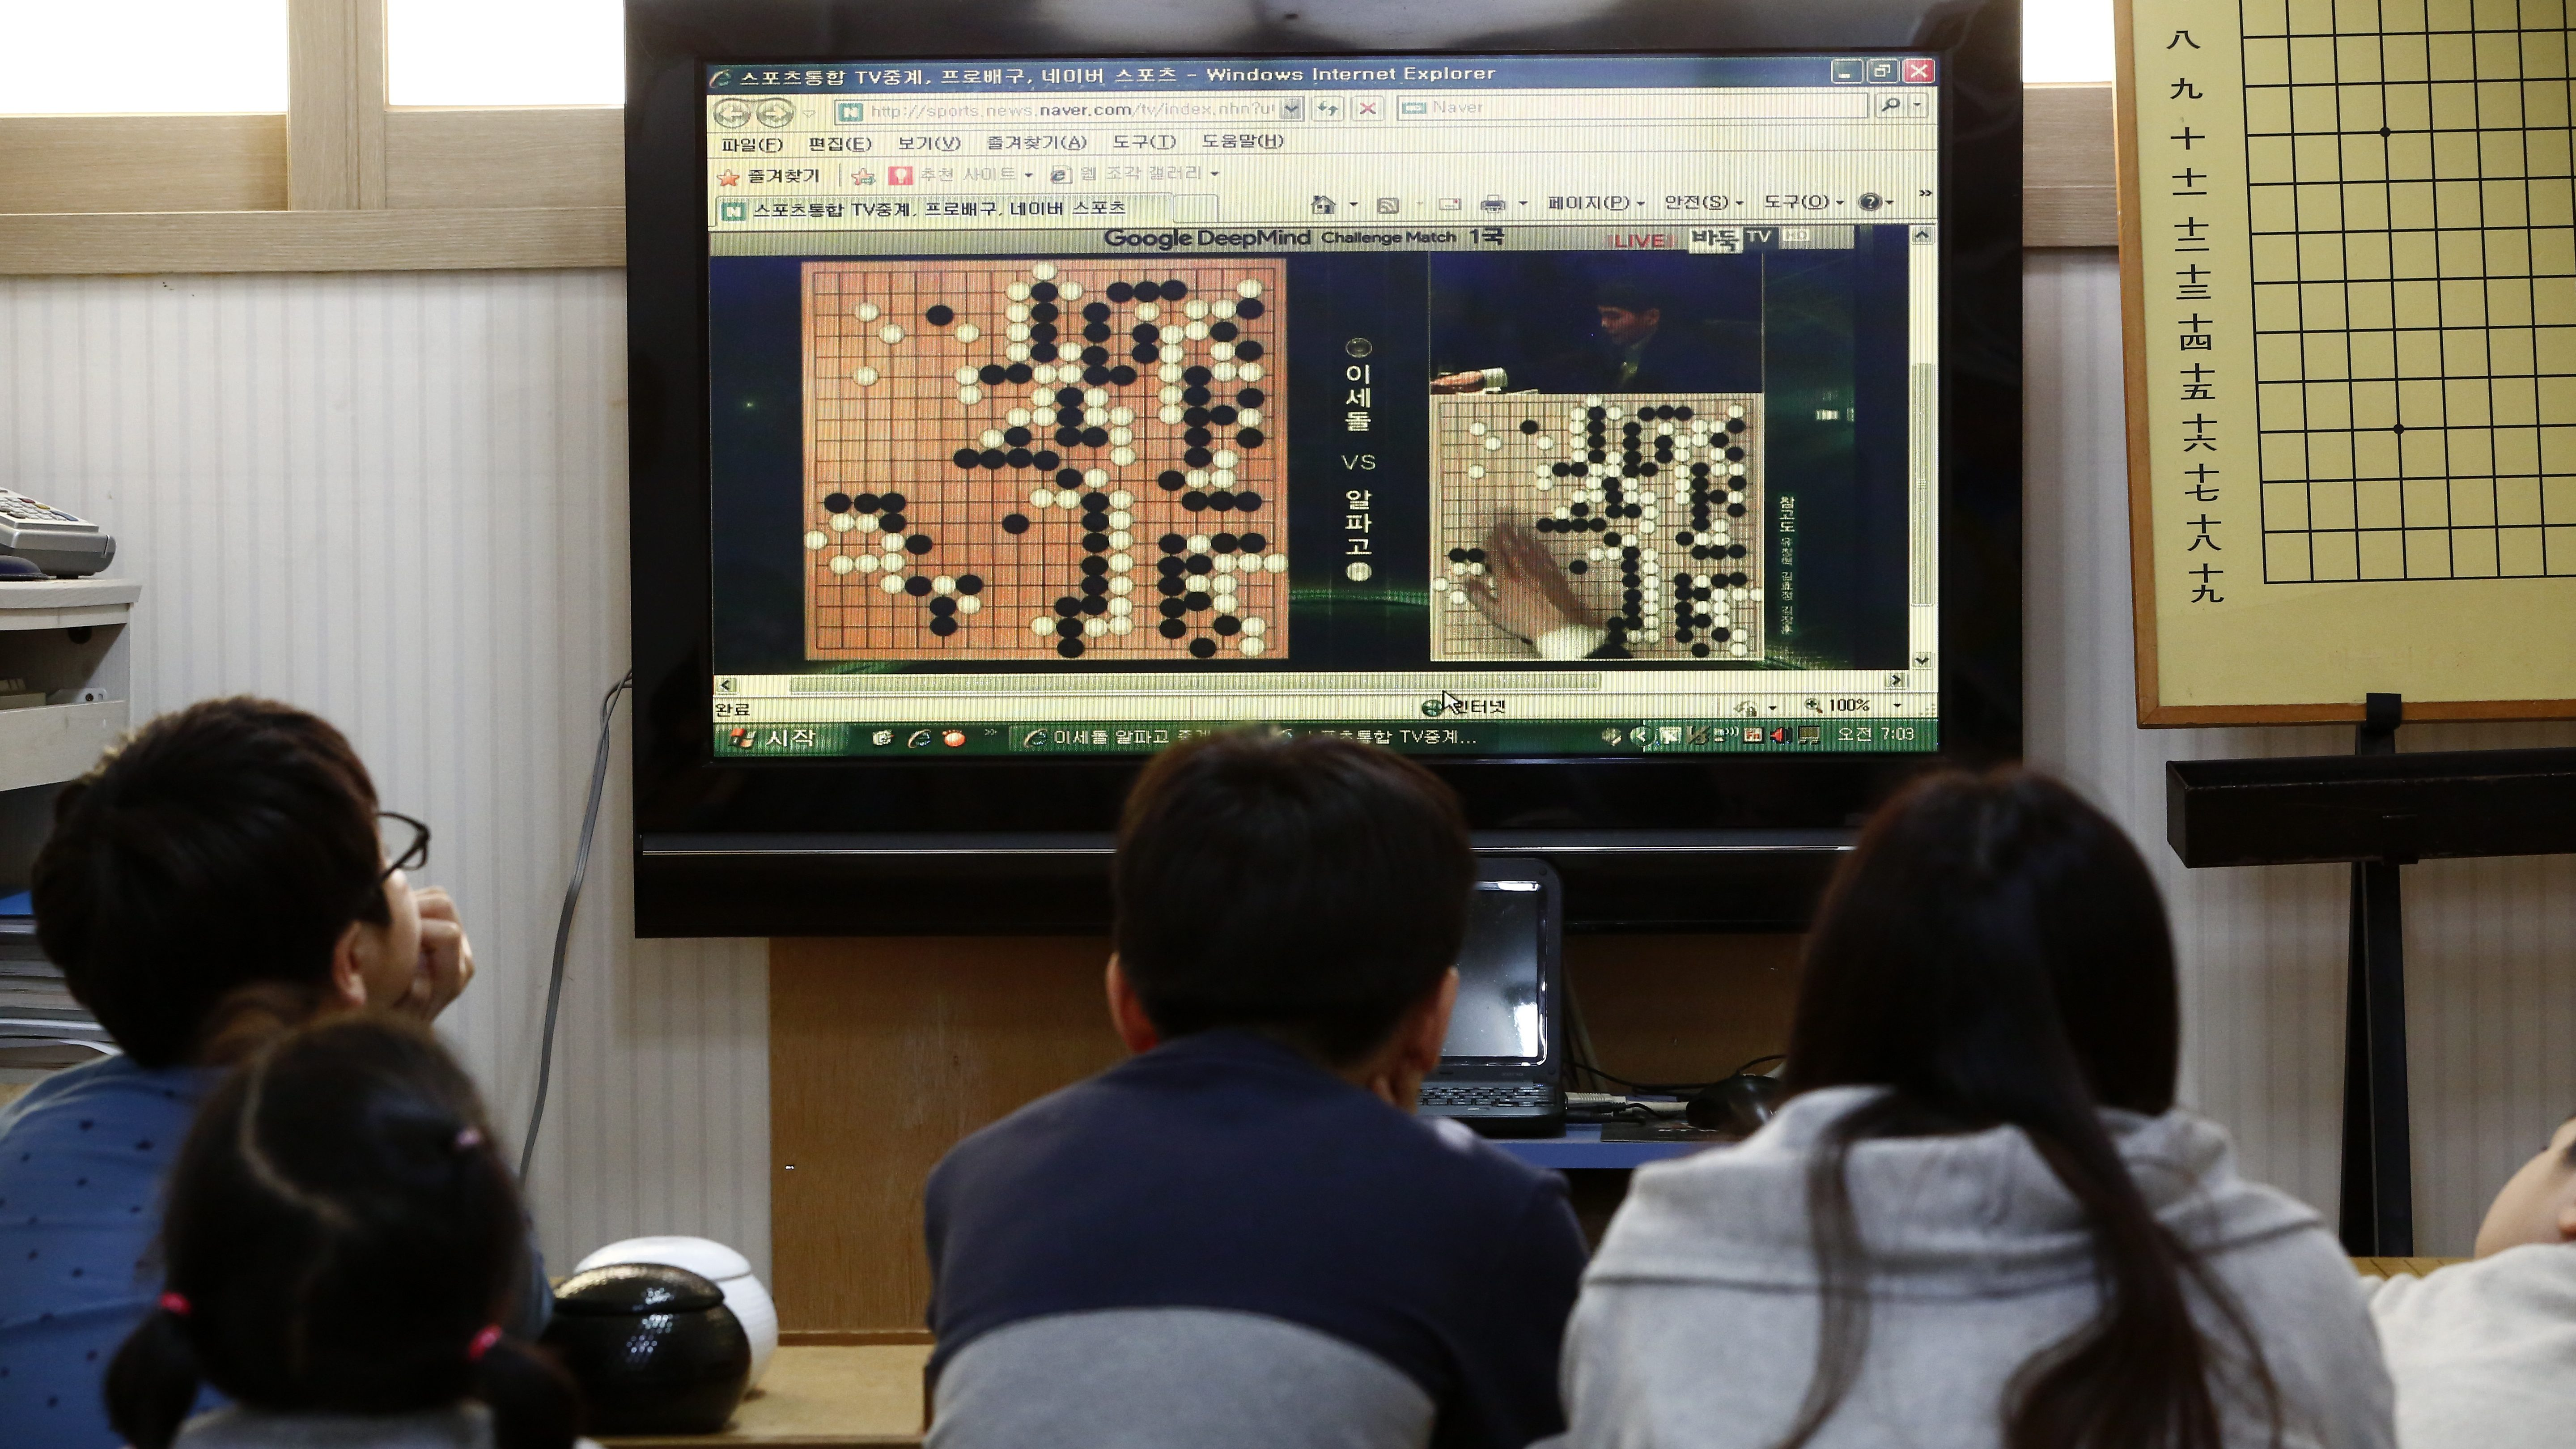 South Korean elementary students watch the historic match between South Korean Go champion Lee Se-dol and the AlphaGo, an artificial intelligence system developed by Google at the Black and White Institute in Seoul, South Korea, 09 March 2016. One of Google's top computer programmes squared off against a human opponent for a five-round match of the boardgame Go on 09 March, in the latest development to pit artificial intelligence against human ingenuity.